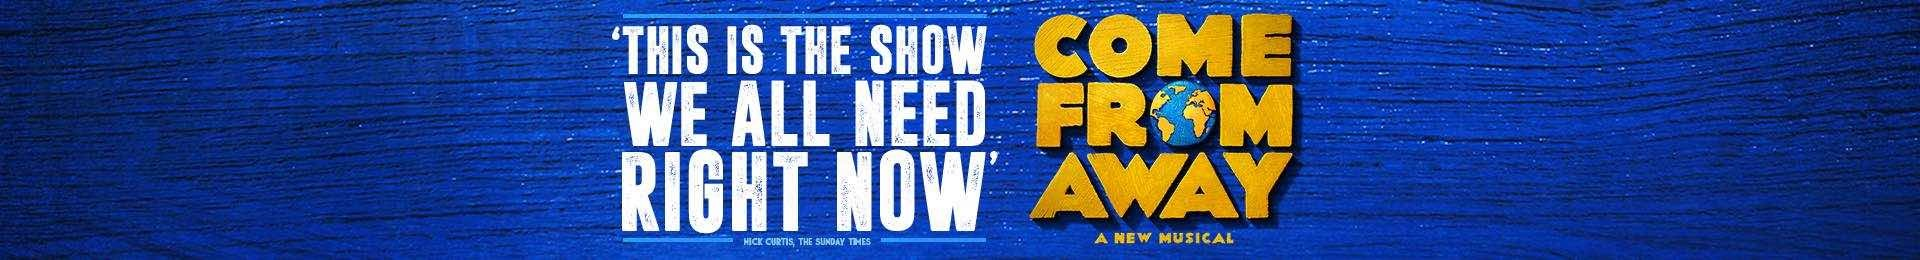 Come From Away tickets at the Phoenix Theatre and Dinner at Scoff & Banter